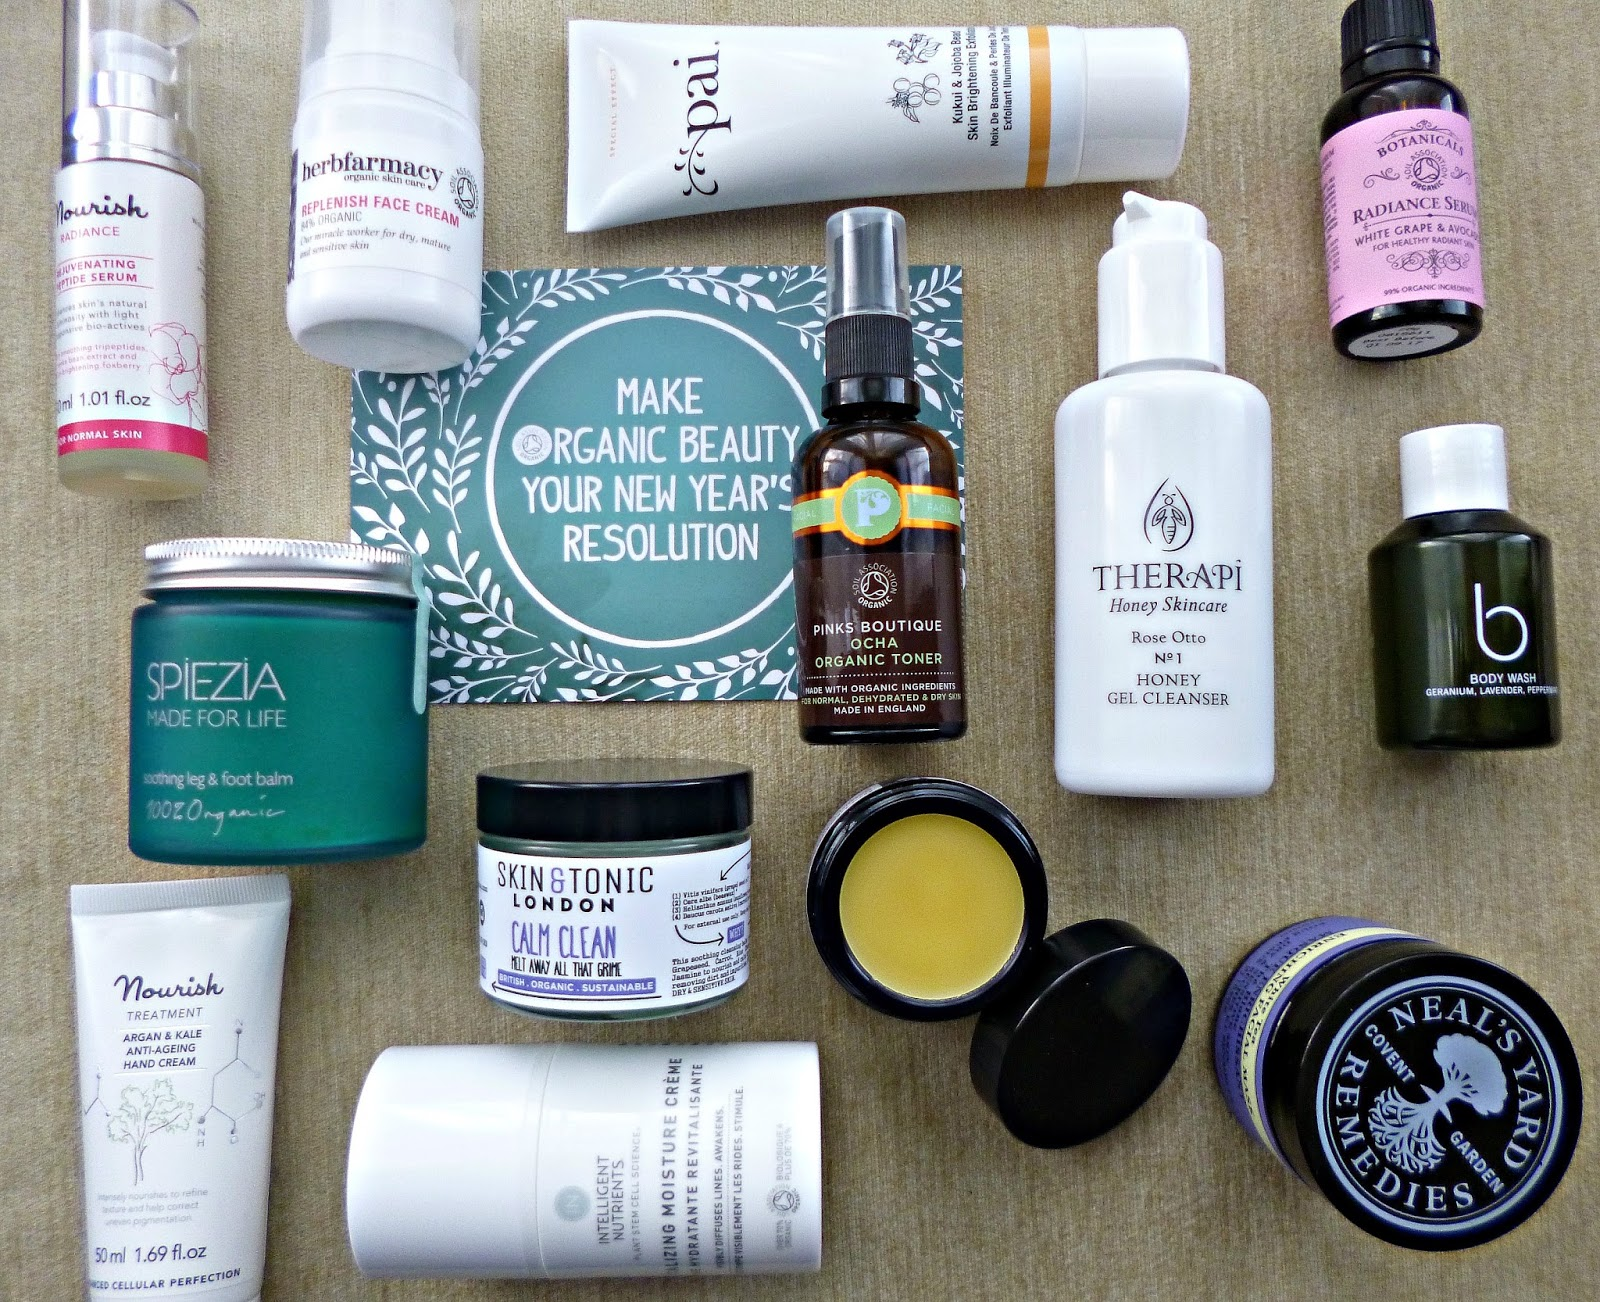 The campaign for clarity – navigating the organic beauty market